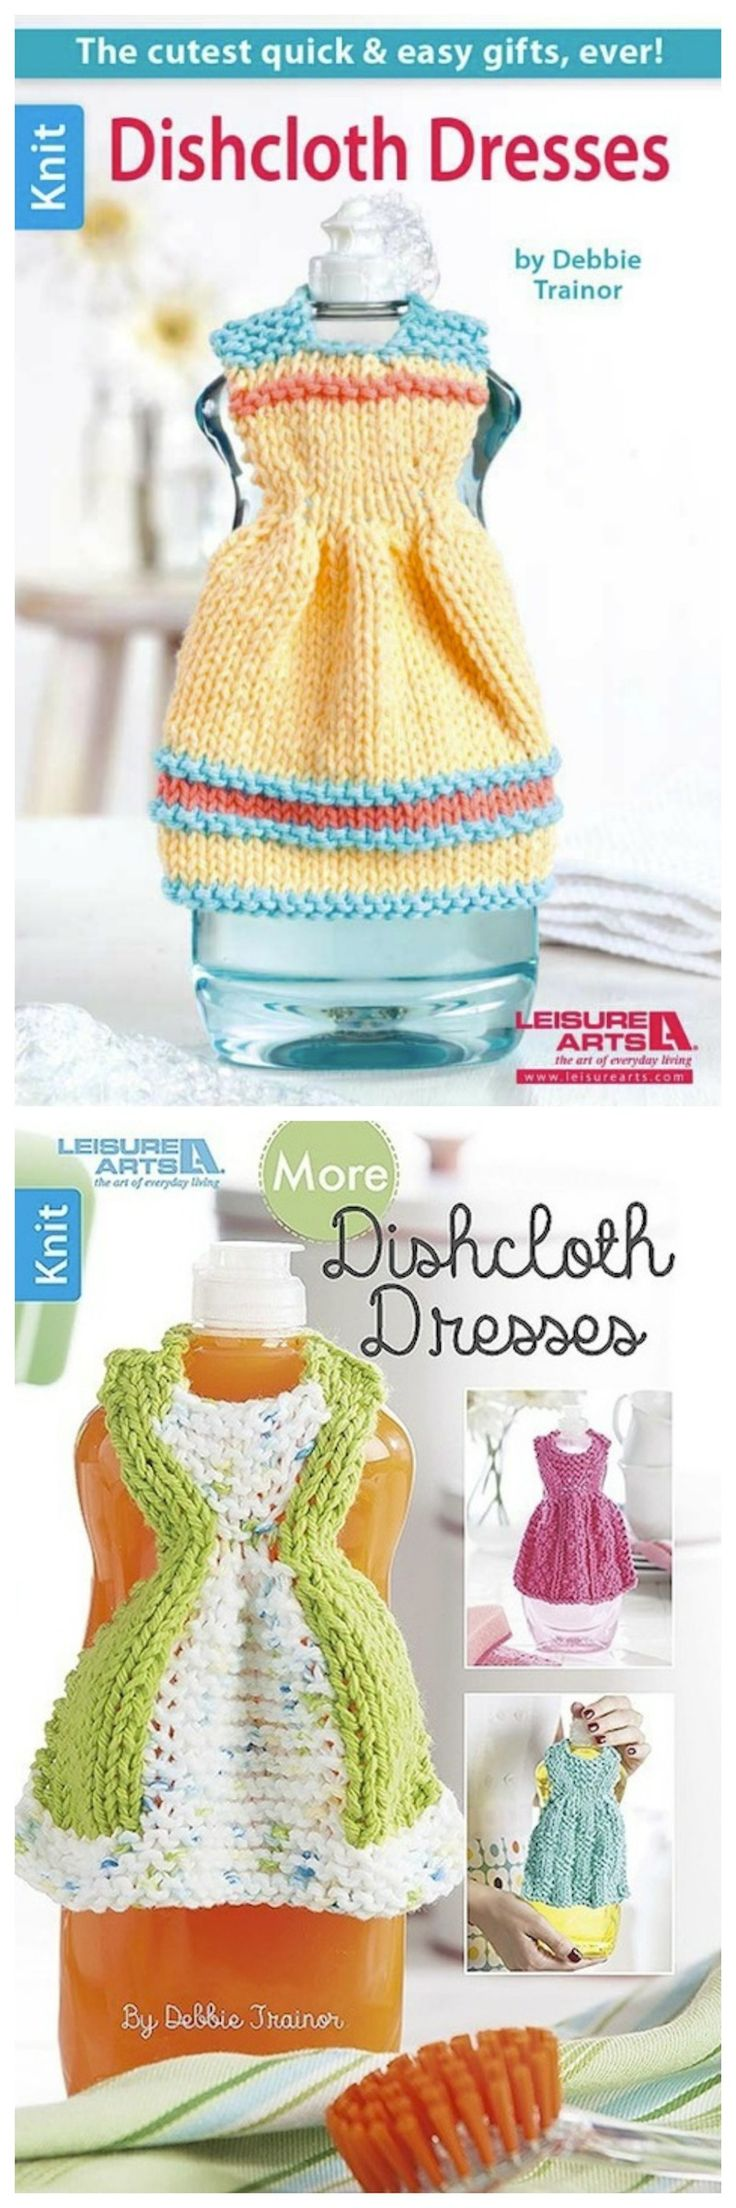 Knitting Book Reviews: Dishcloth Dresses and More Dishcloth Dresses by Debbie Trainor on Underground Crafter